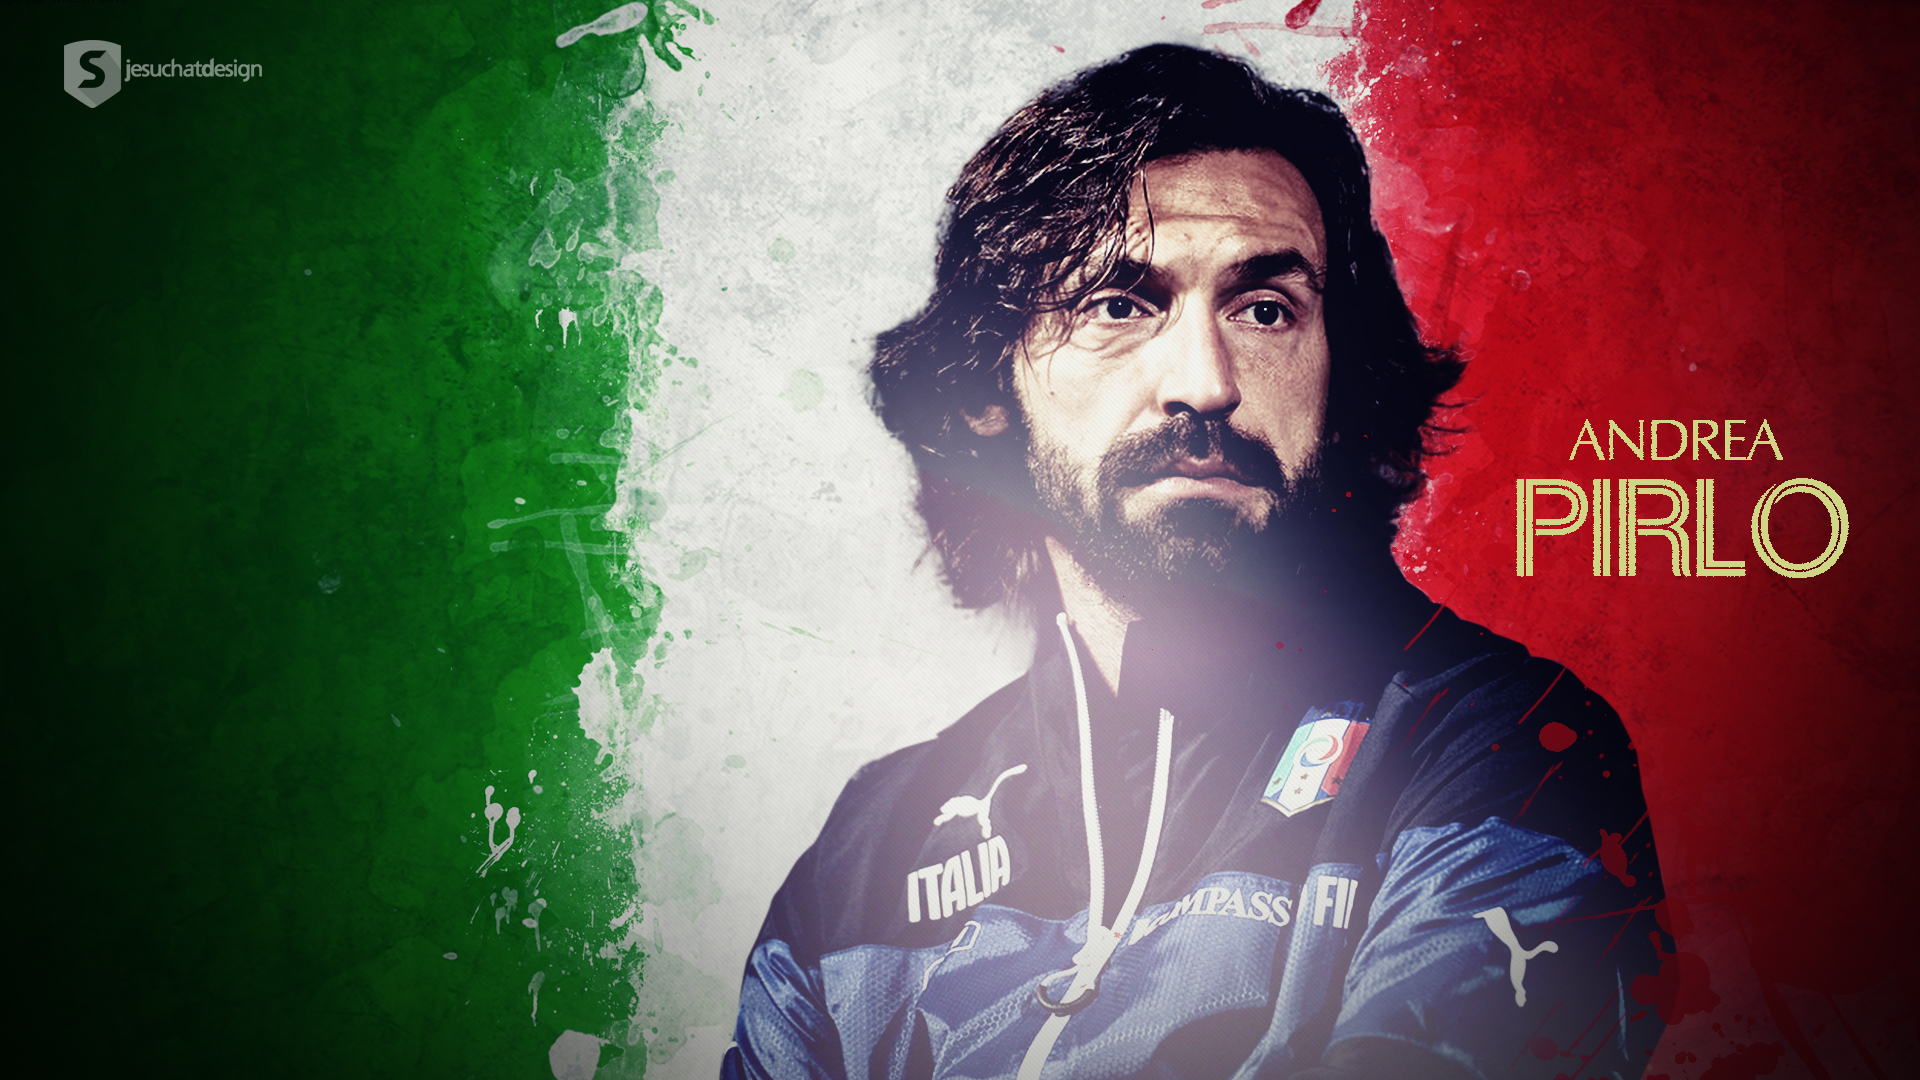 1920x1080 - Andrea Pirlo Wallpapers 2